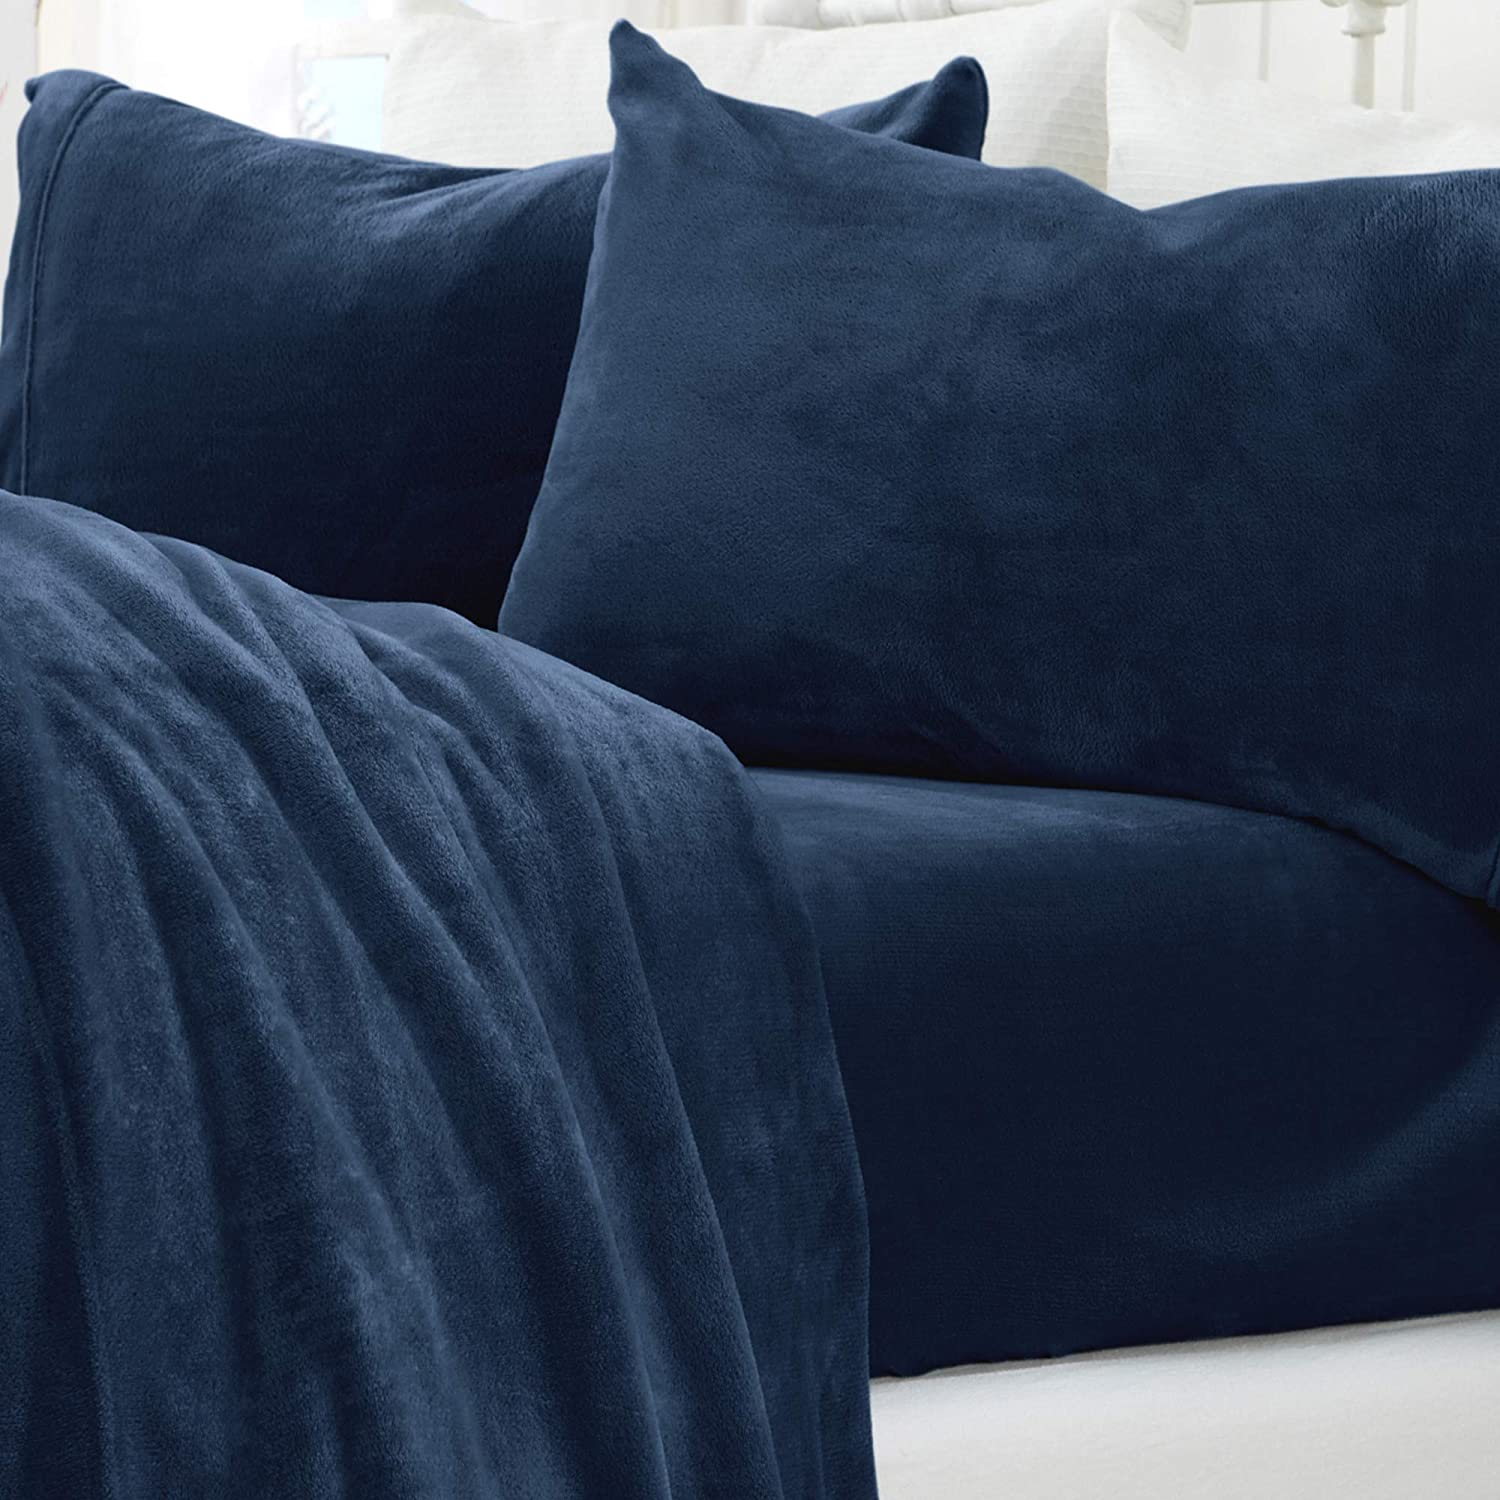 Micro Fleece Extra Soft Cozy Velvet Plush Sheet Set. Deluxe Bed Sheets with Deep Pockets. Velvet Luxe Collection (California King, Denim Blue)